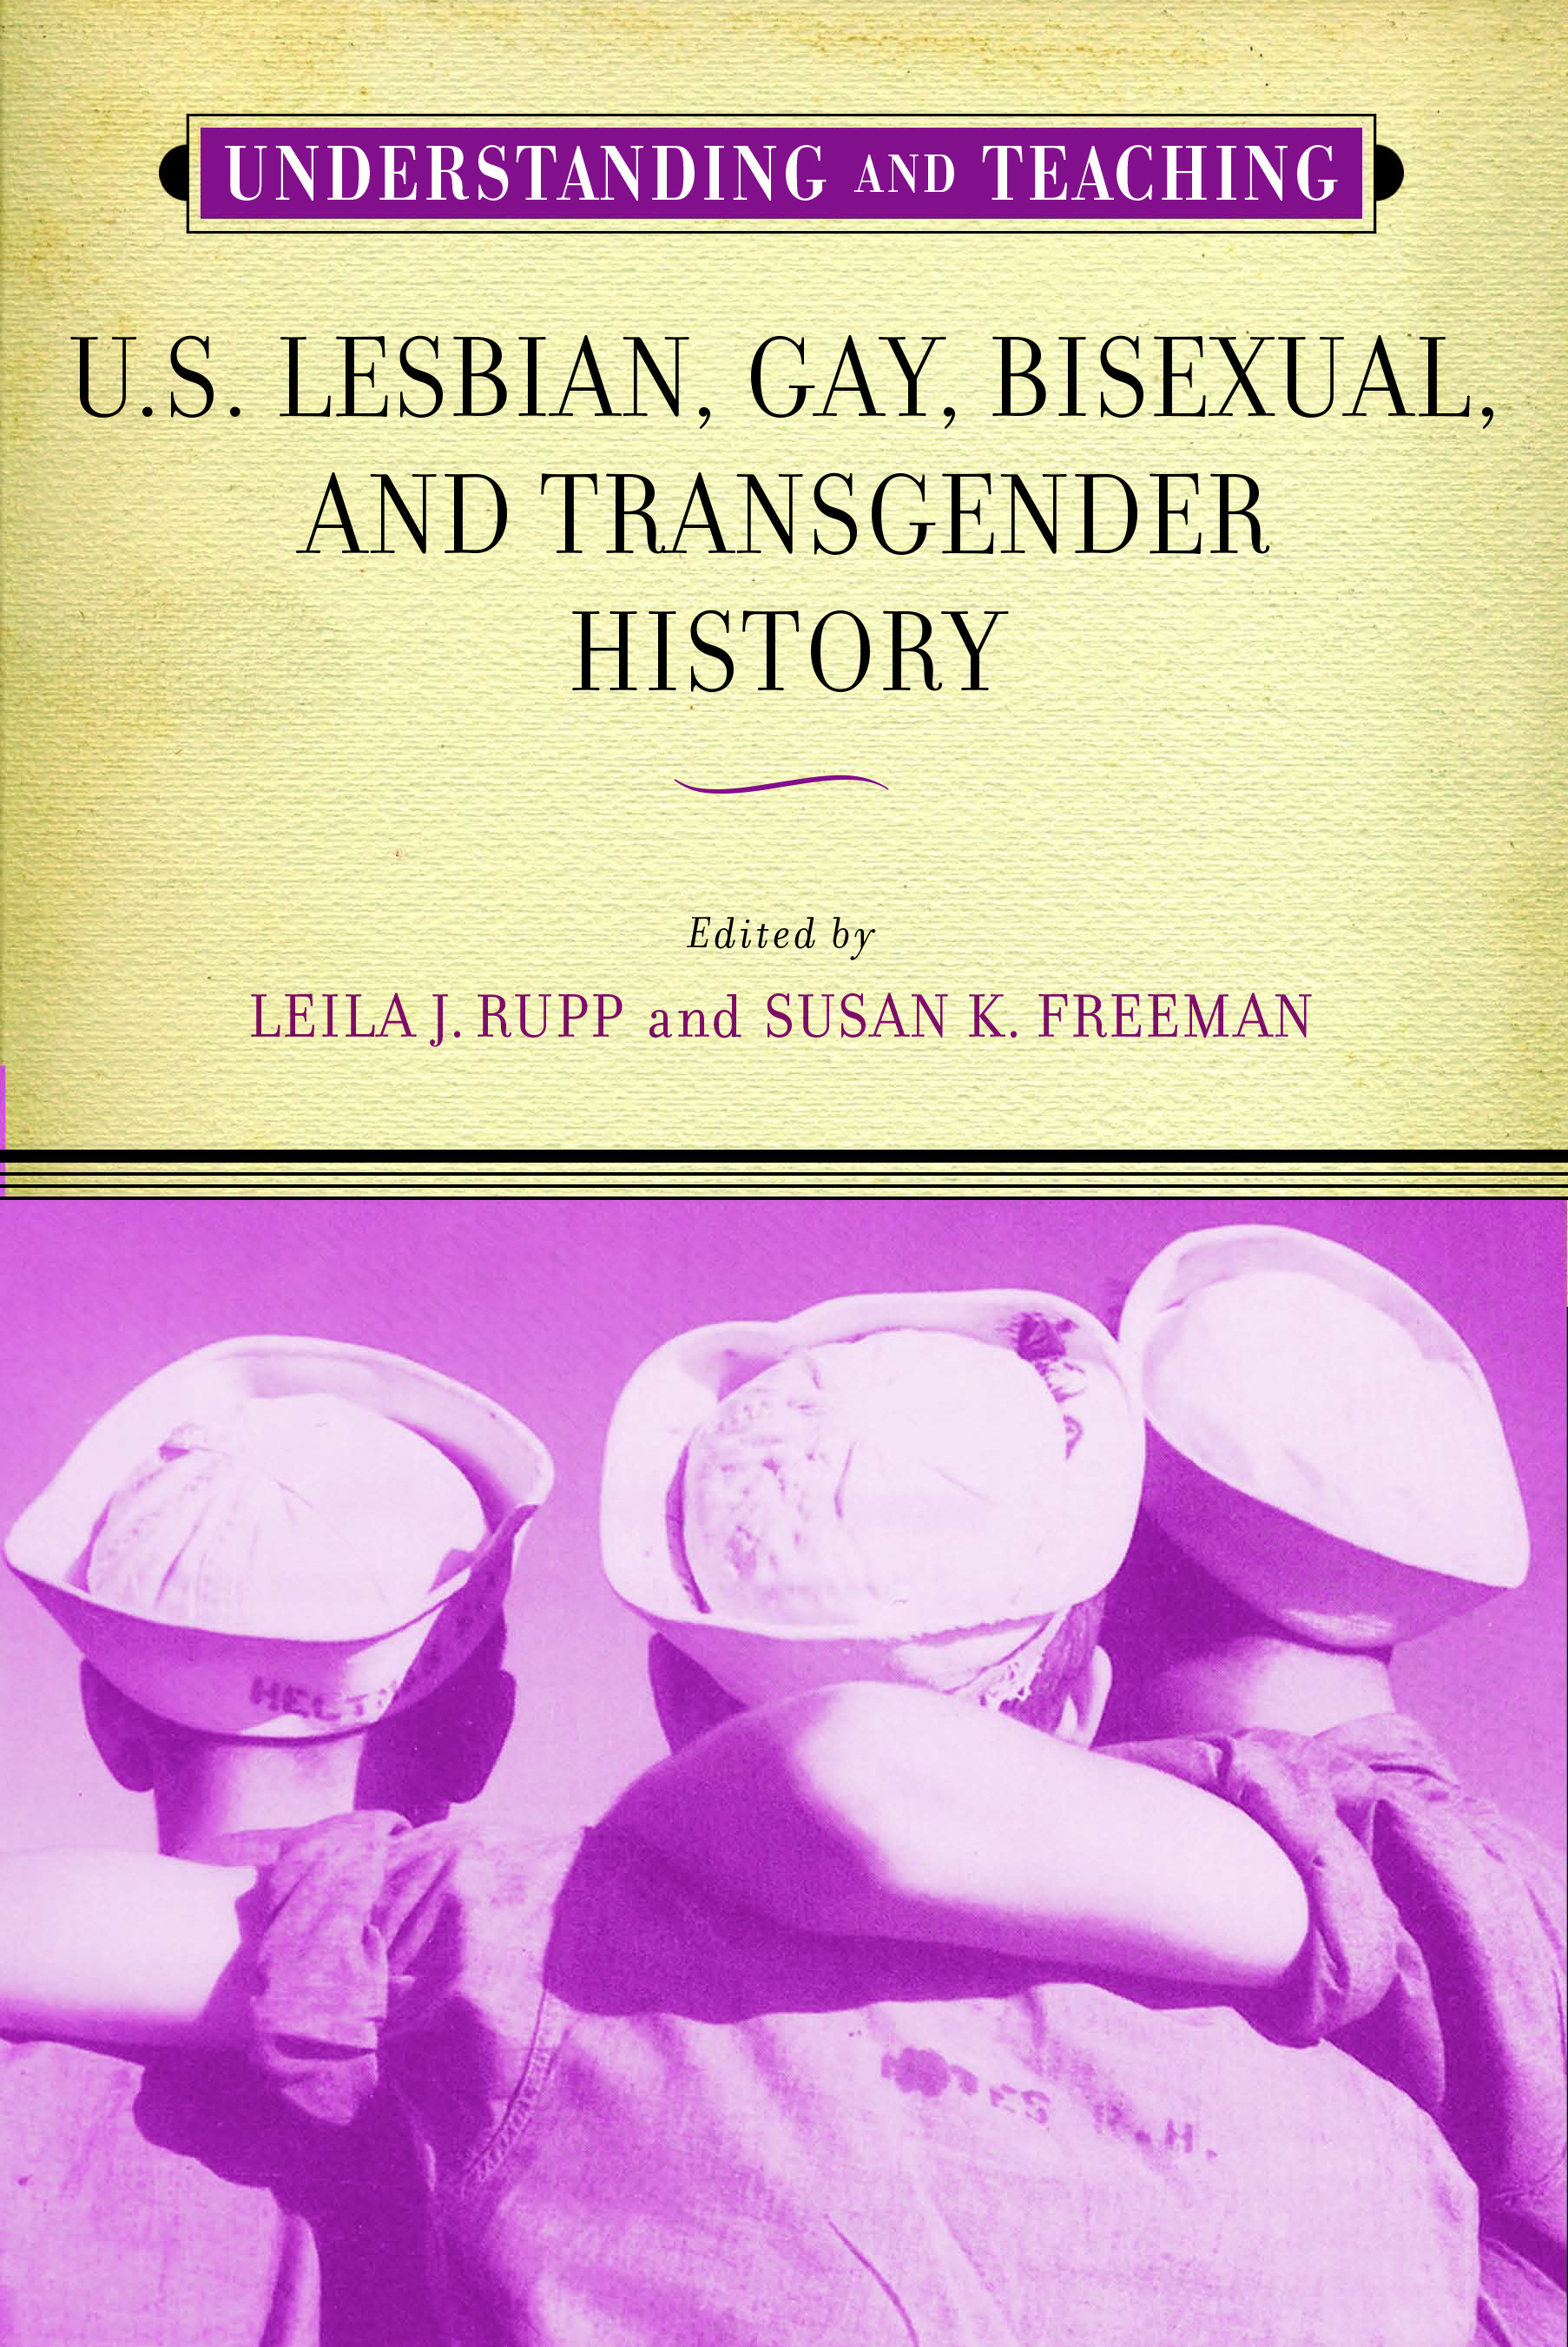 Understanding and Teaching U.S. Lesbian, Gay, Bisexual, and Transgender History [Book Chapter]